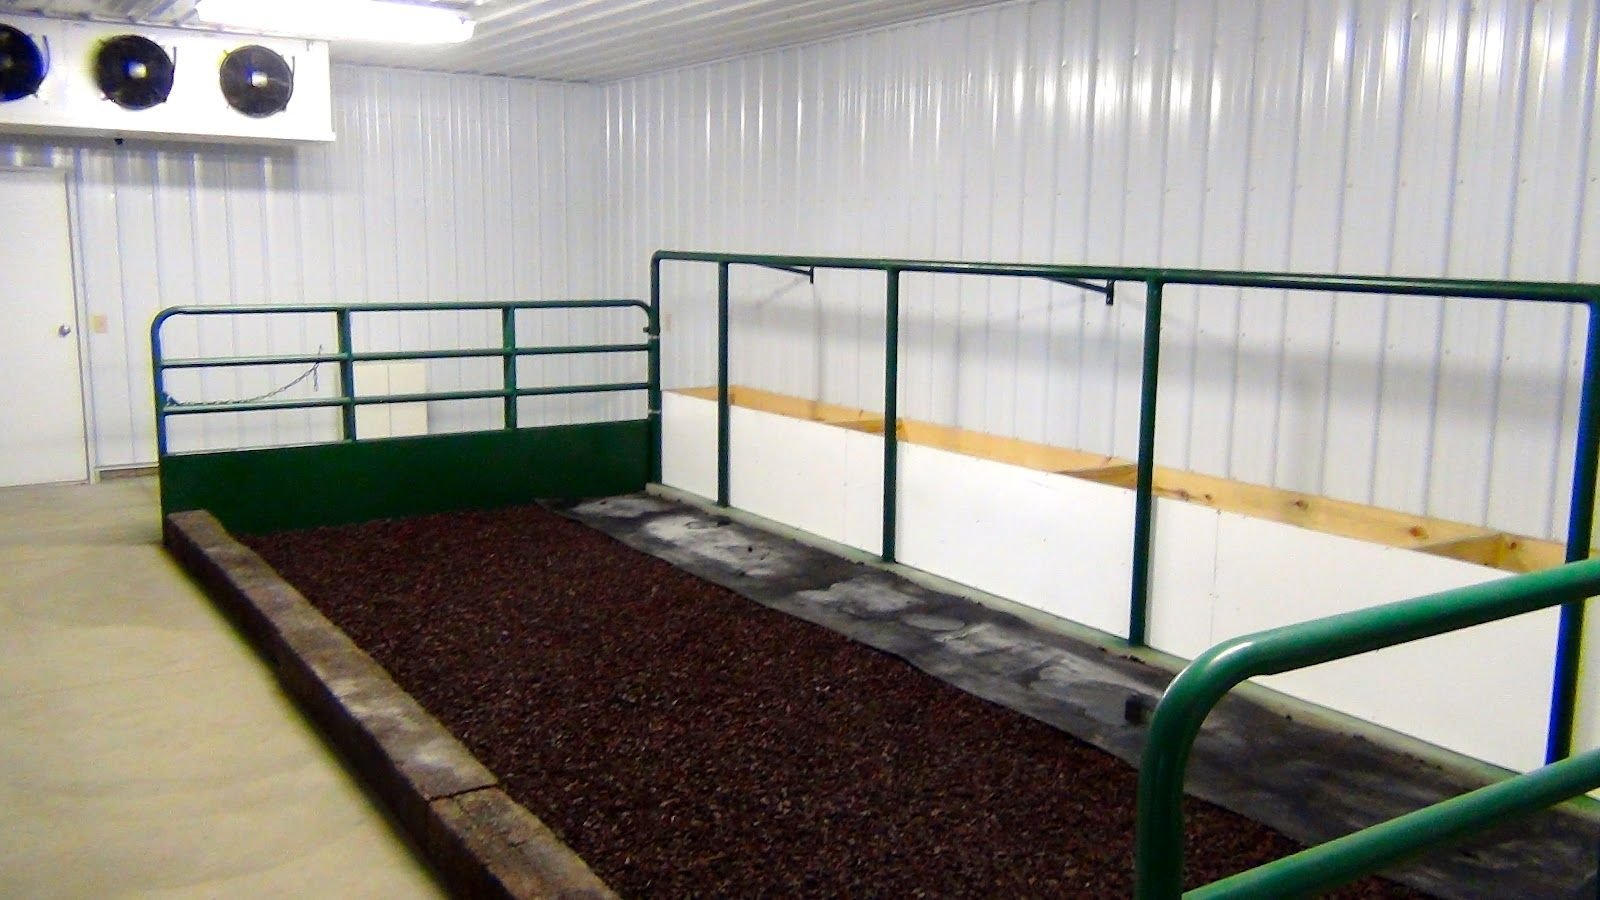 Show cattle barn on pinterest - Cool room ides ...